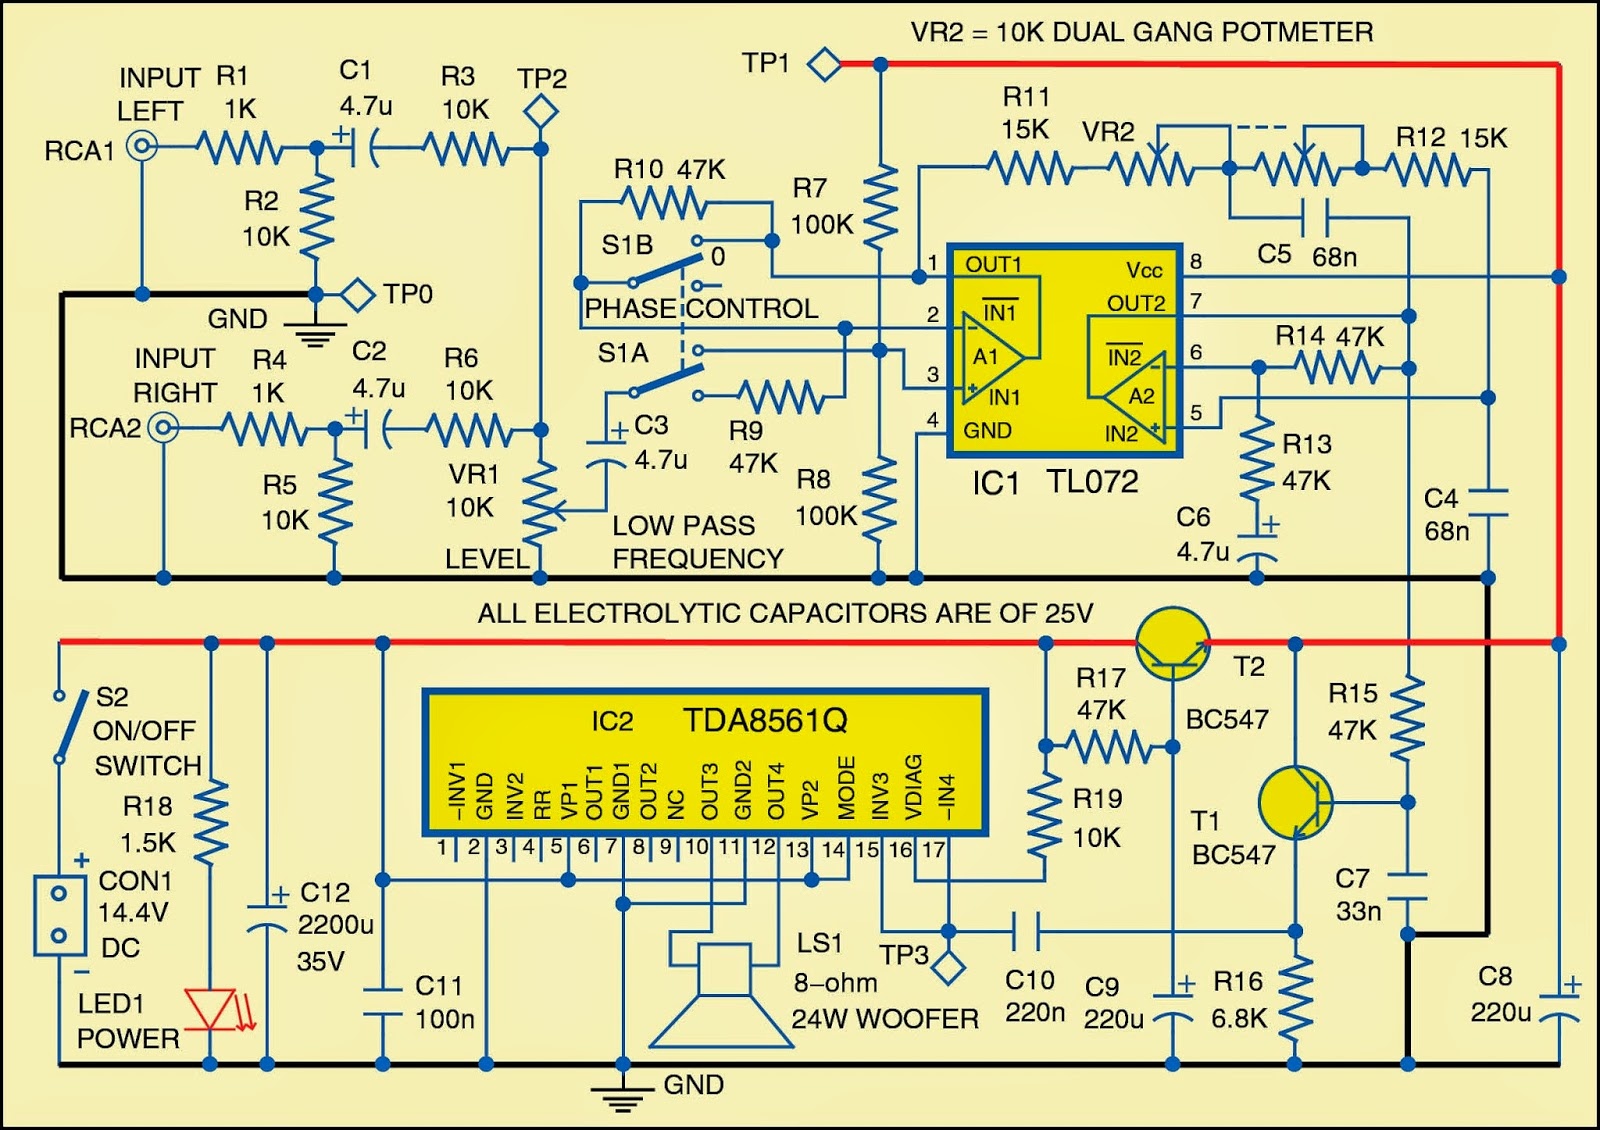 Car Subwoofer And Wiring Diagram Worksheet Sub Amp Wire For Cars Circuit Electronic Circuits Rh Streampowers Blogspot Com Wattage Bridge